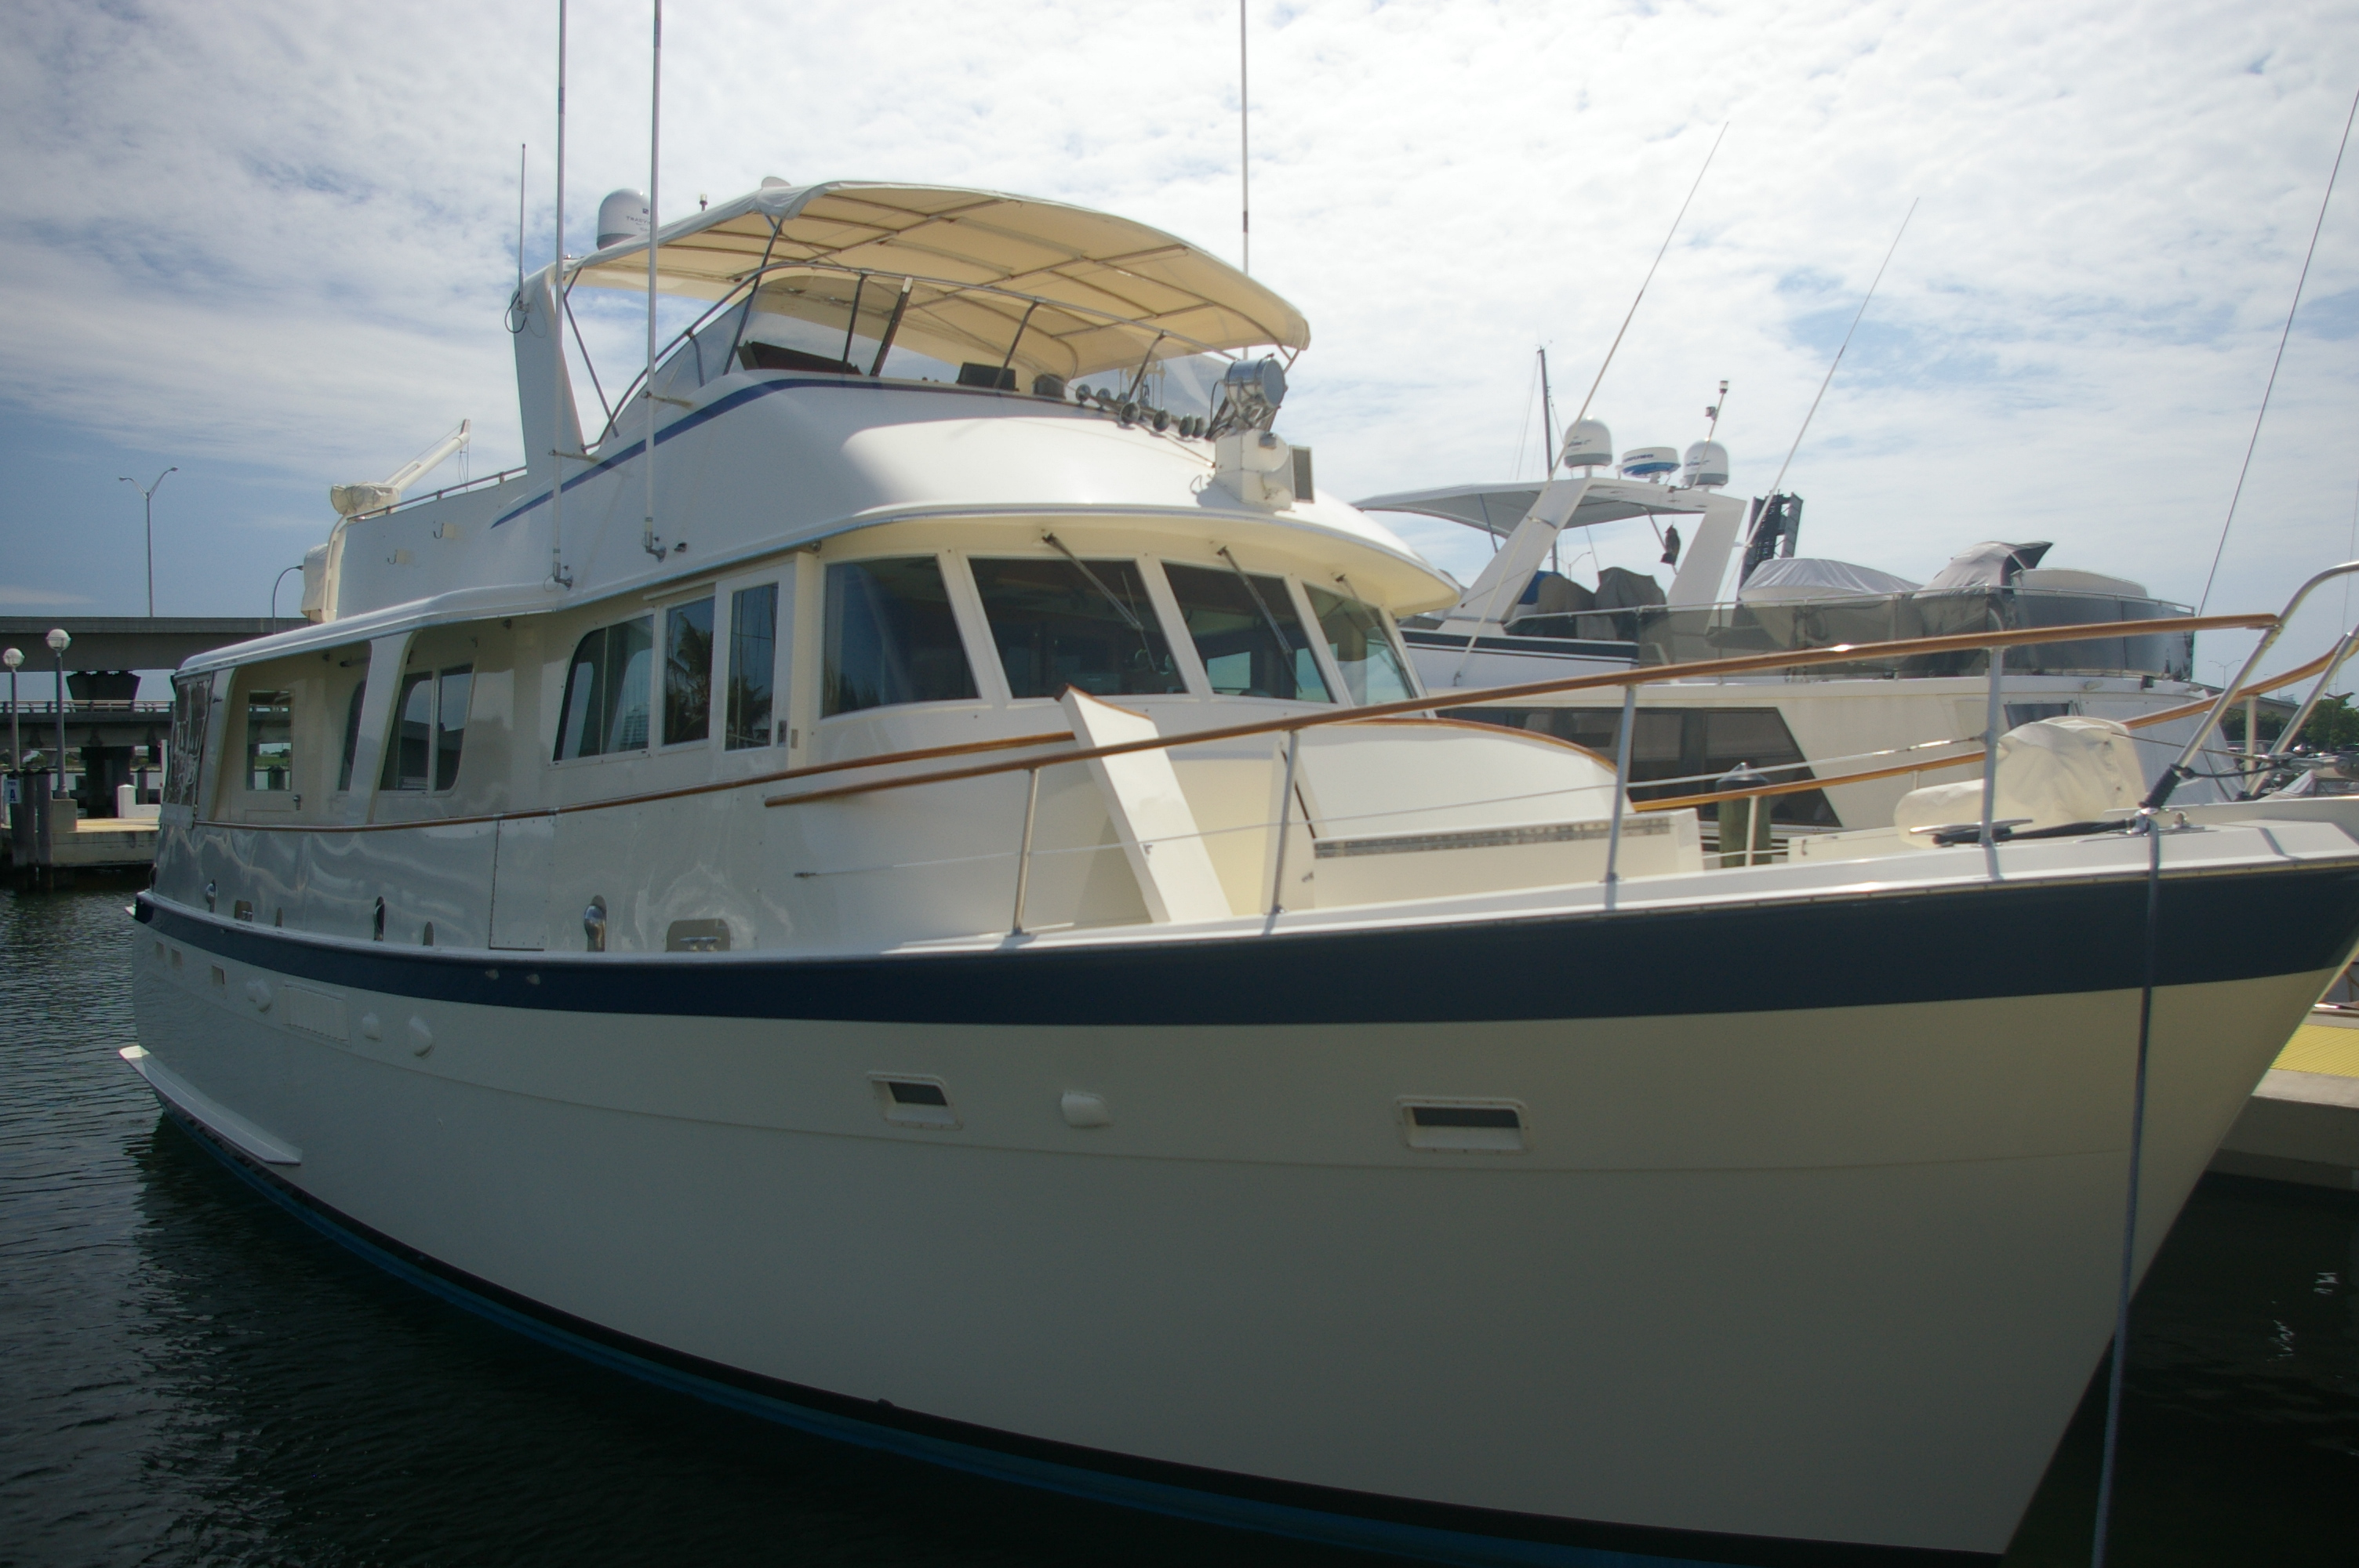 The Shakedown Cruise abaord a Hatteras 58 LRC Long Range Cruiser